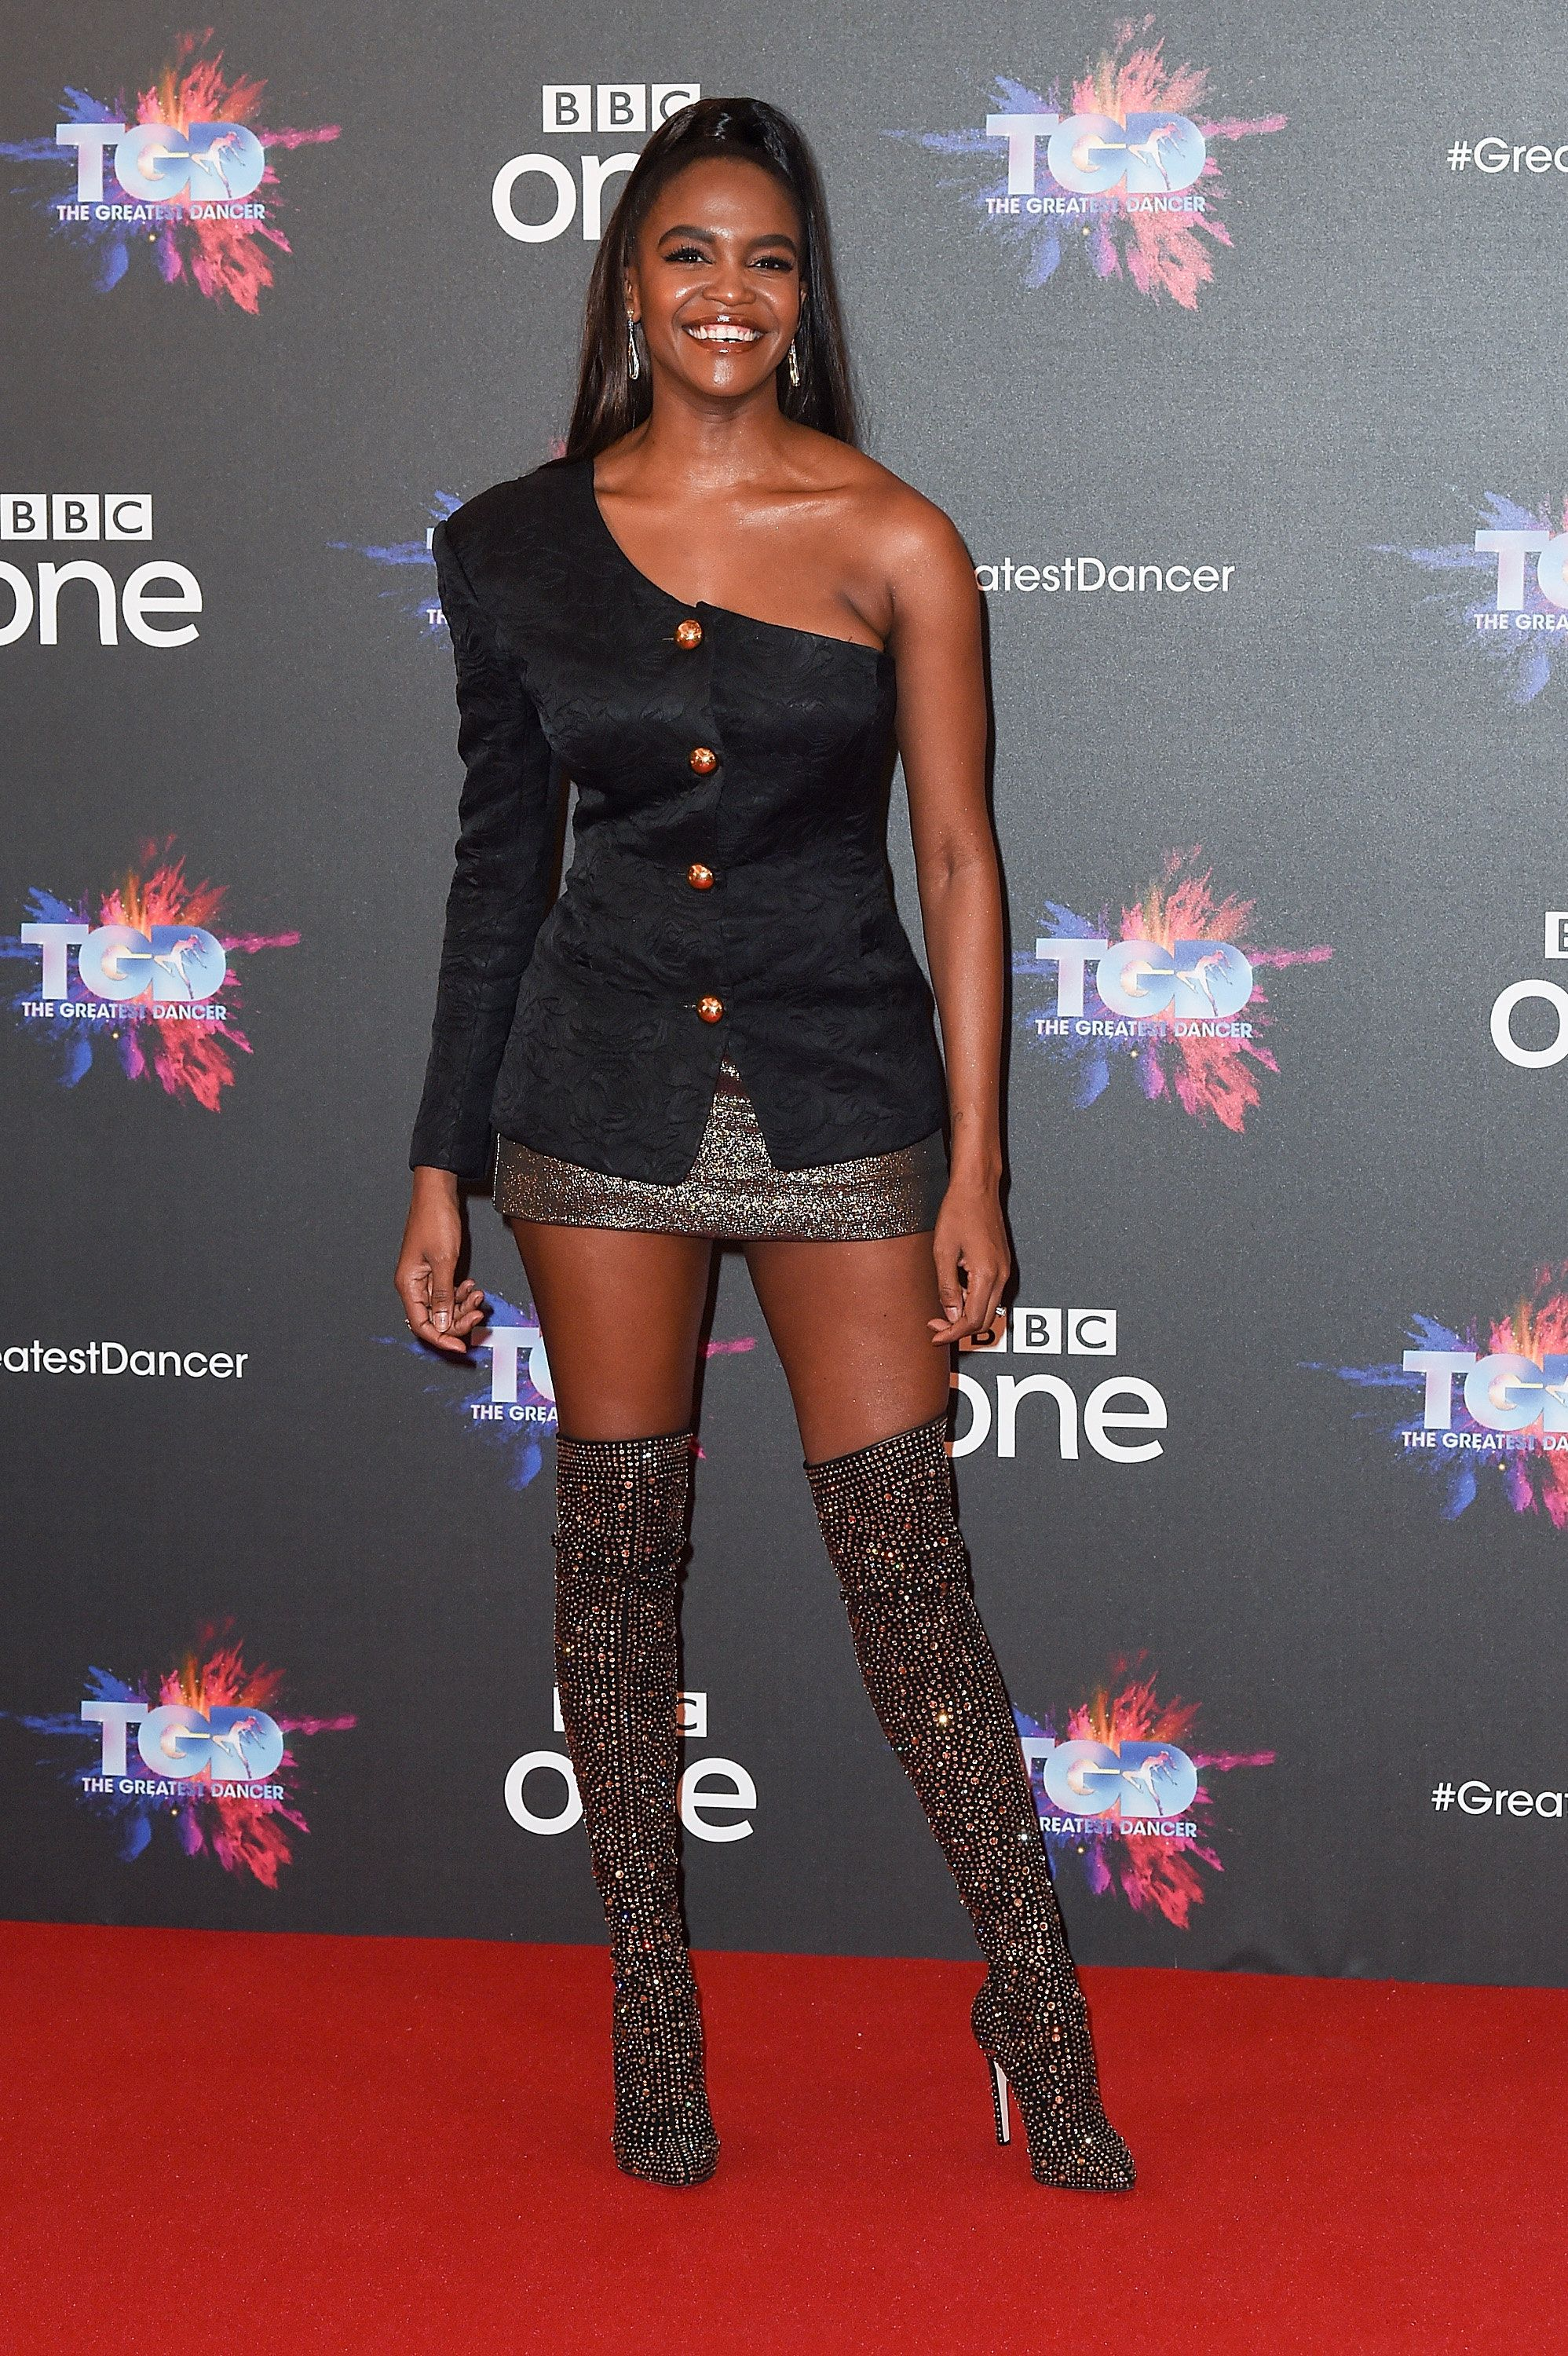 STRICTLY THE ONE: Oti Mabuse Lands Big New Presenting